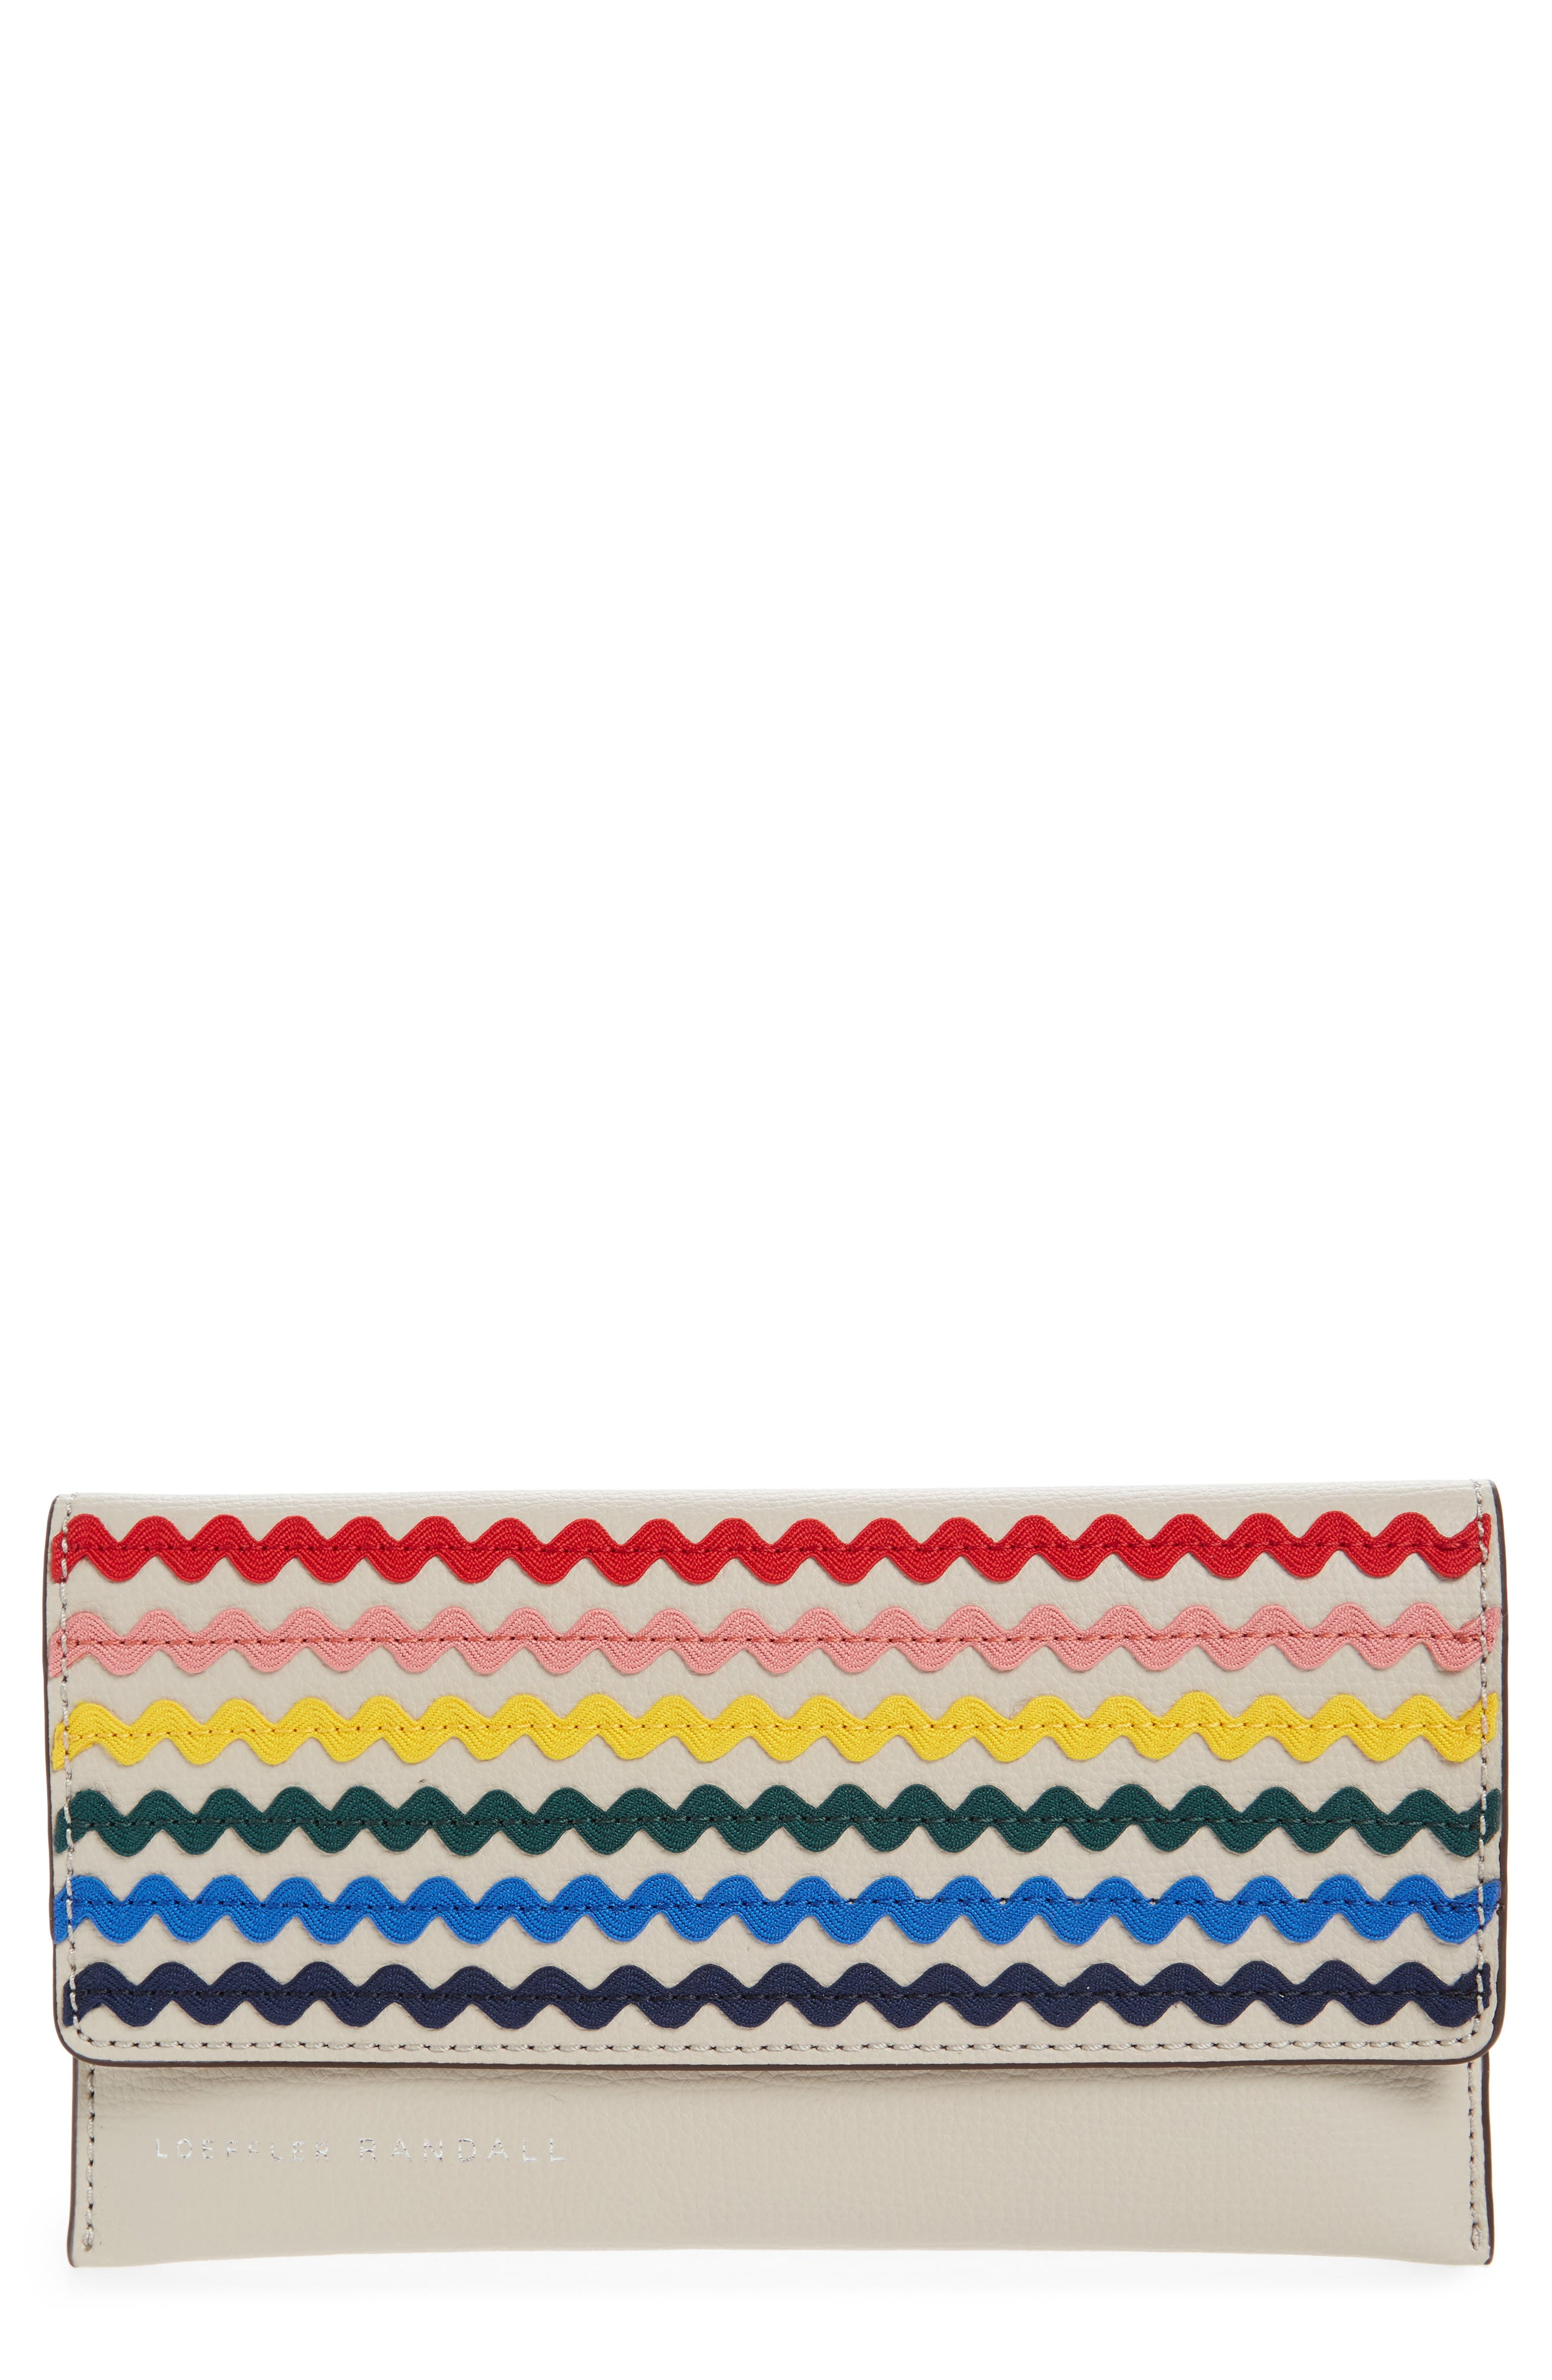 Everything Embellished Leather Wallet,                             Main thumbnail 1, color,                             Stone/ Rainbow